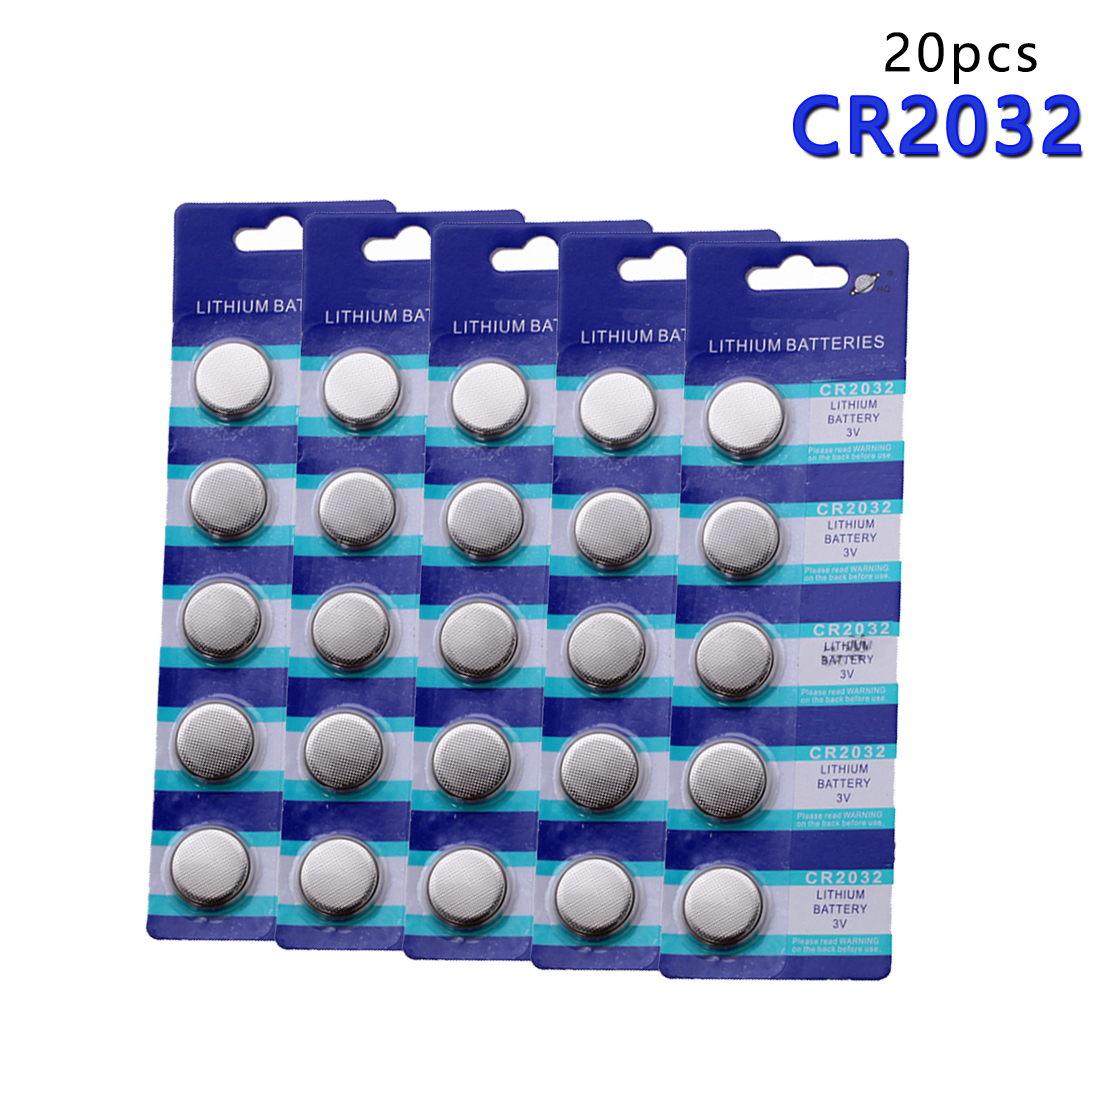 Centechia Top Sale 20pcs Pro CR2032 BR2032 DL2032 SB-T15 EA2032C ECR2032 L2032 CR 2032 Lithium Li-ion 3V Button Coin Battery ...